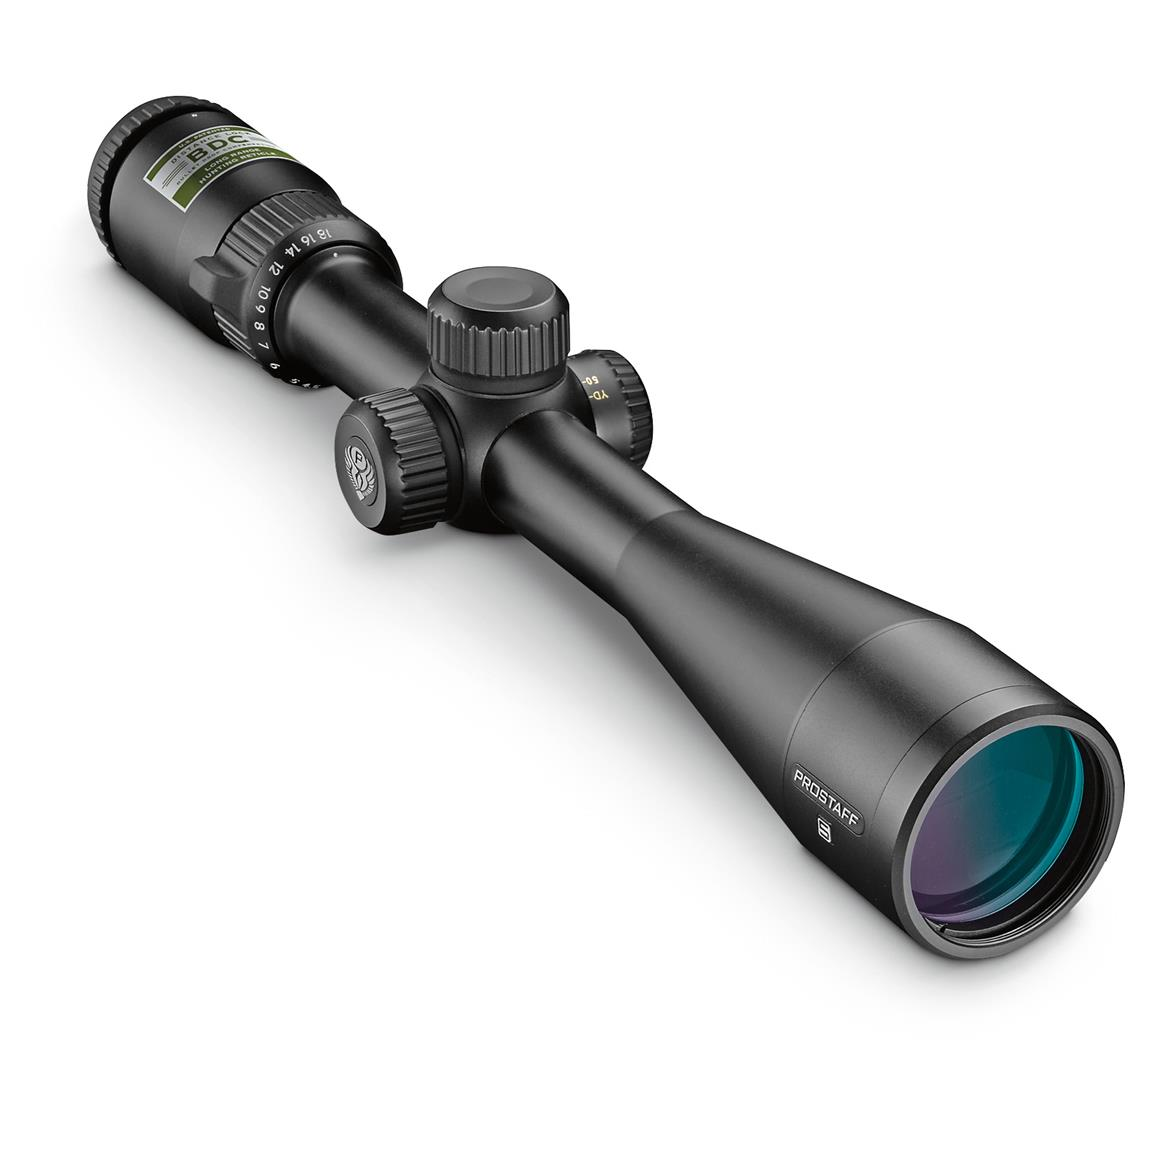 Nikon PROSTAFF 5 4.5-18x40mm Side Focus BDC Rifle Scope